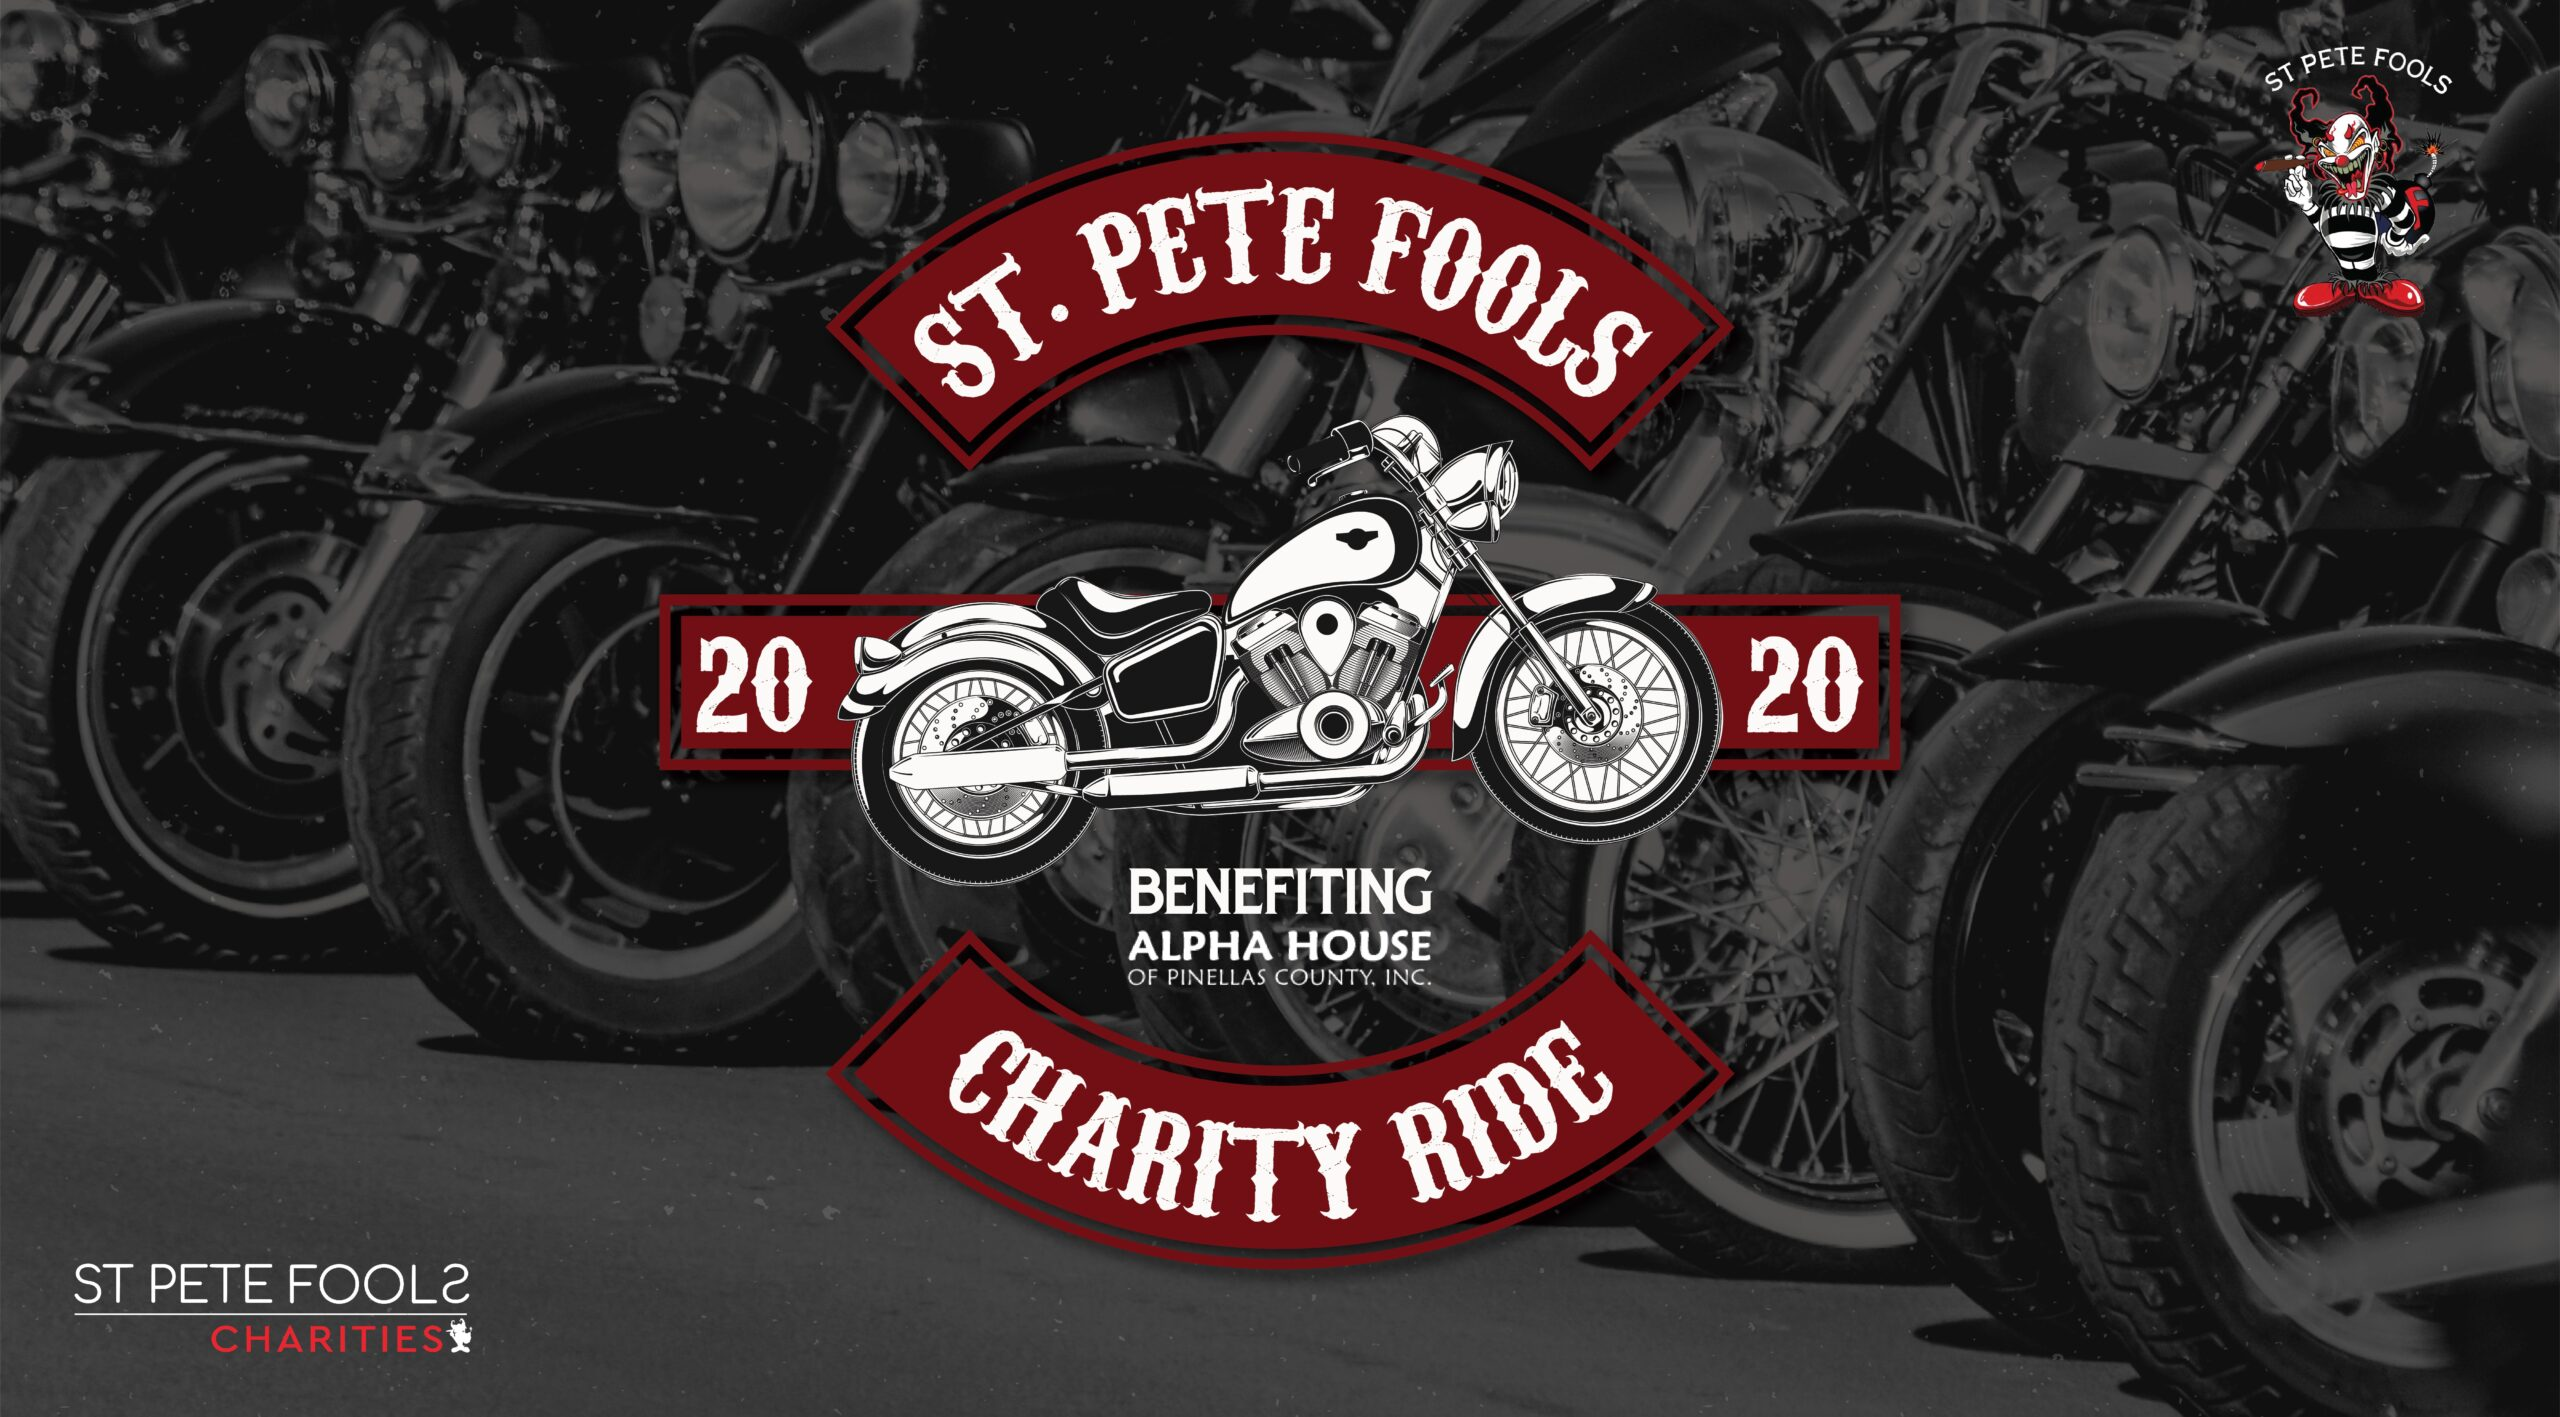 St Pete Fools Social Club Features Motorcycle Ride to Raise Funds for Alpha House